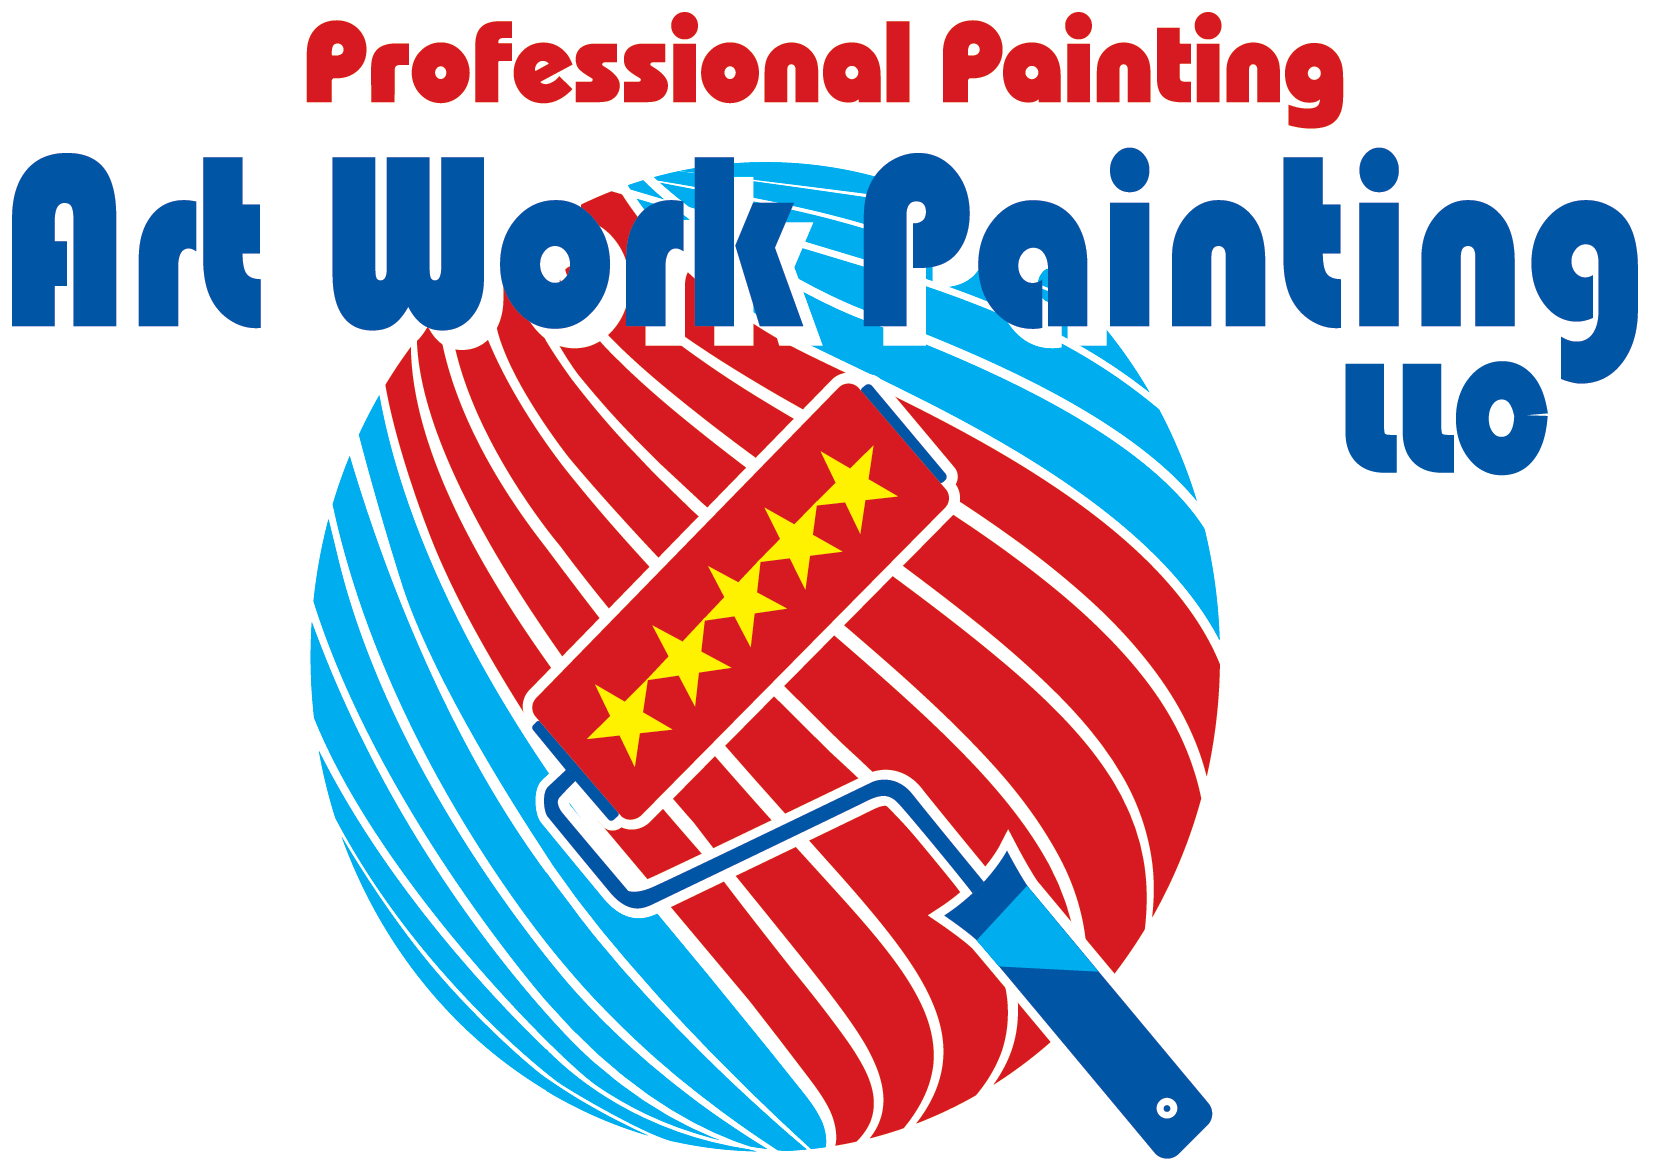 Professional Painting Delaware